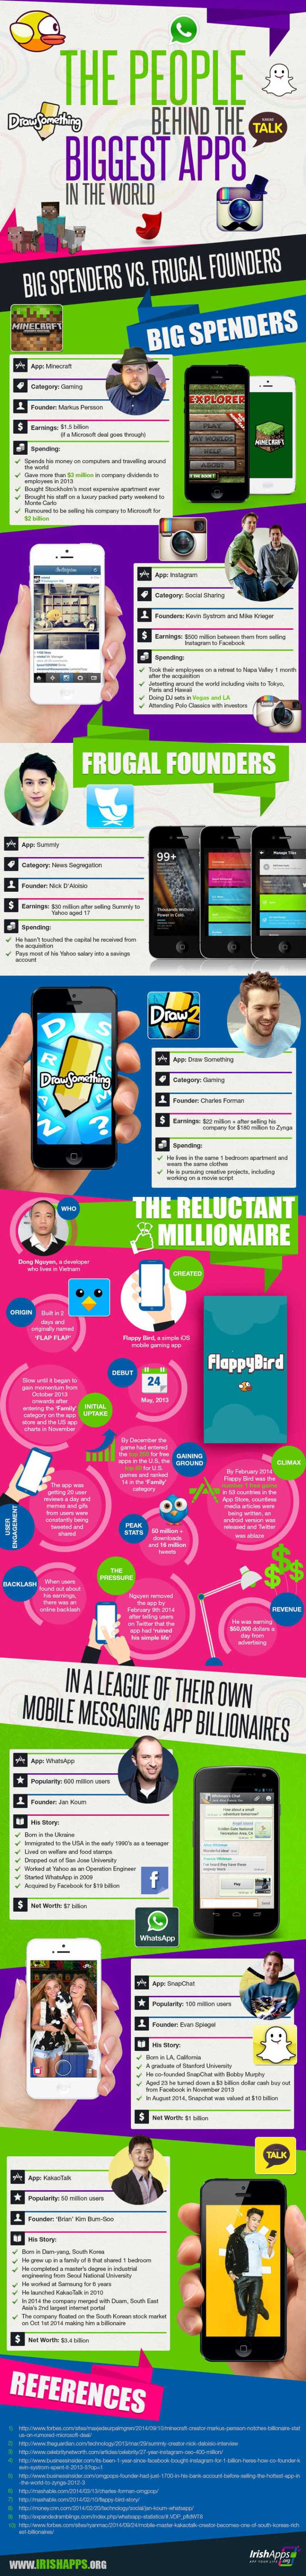 People Behind the Apps infographic